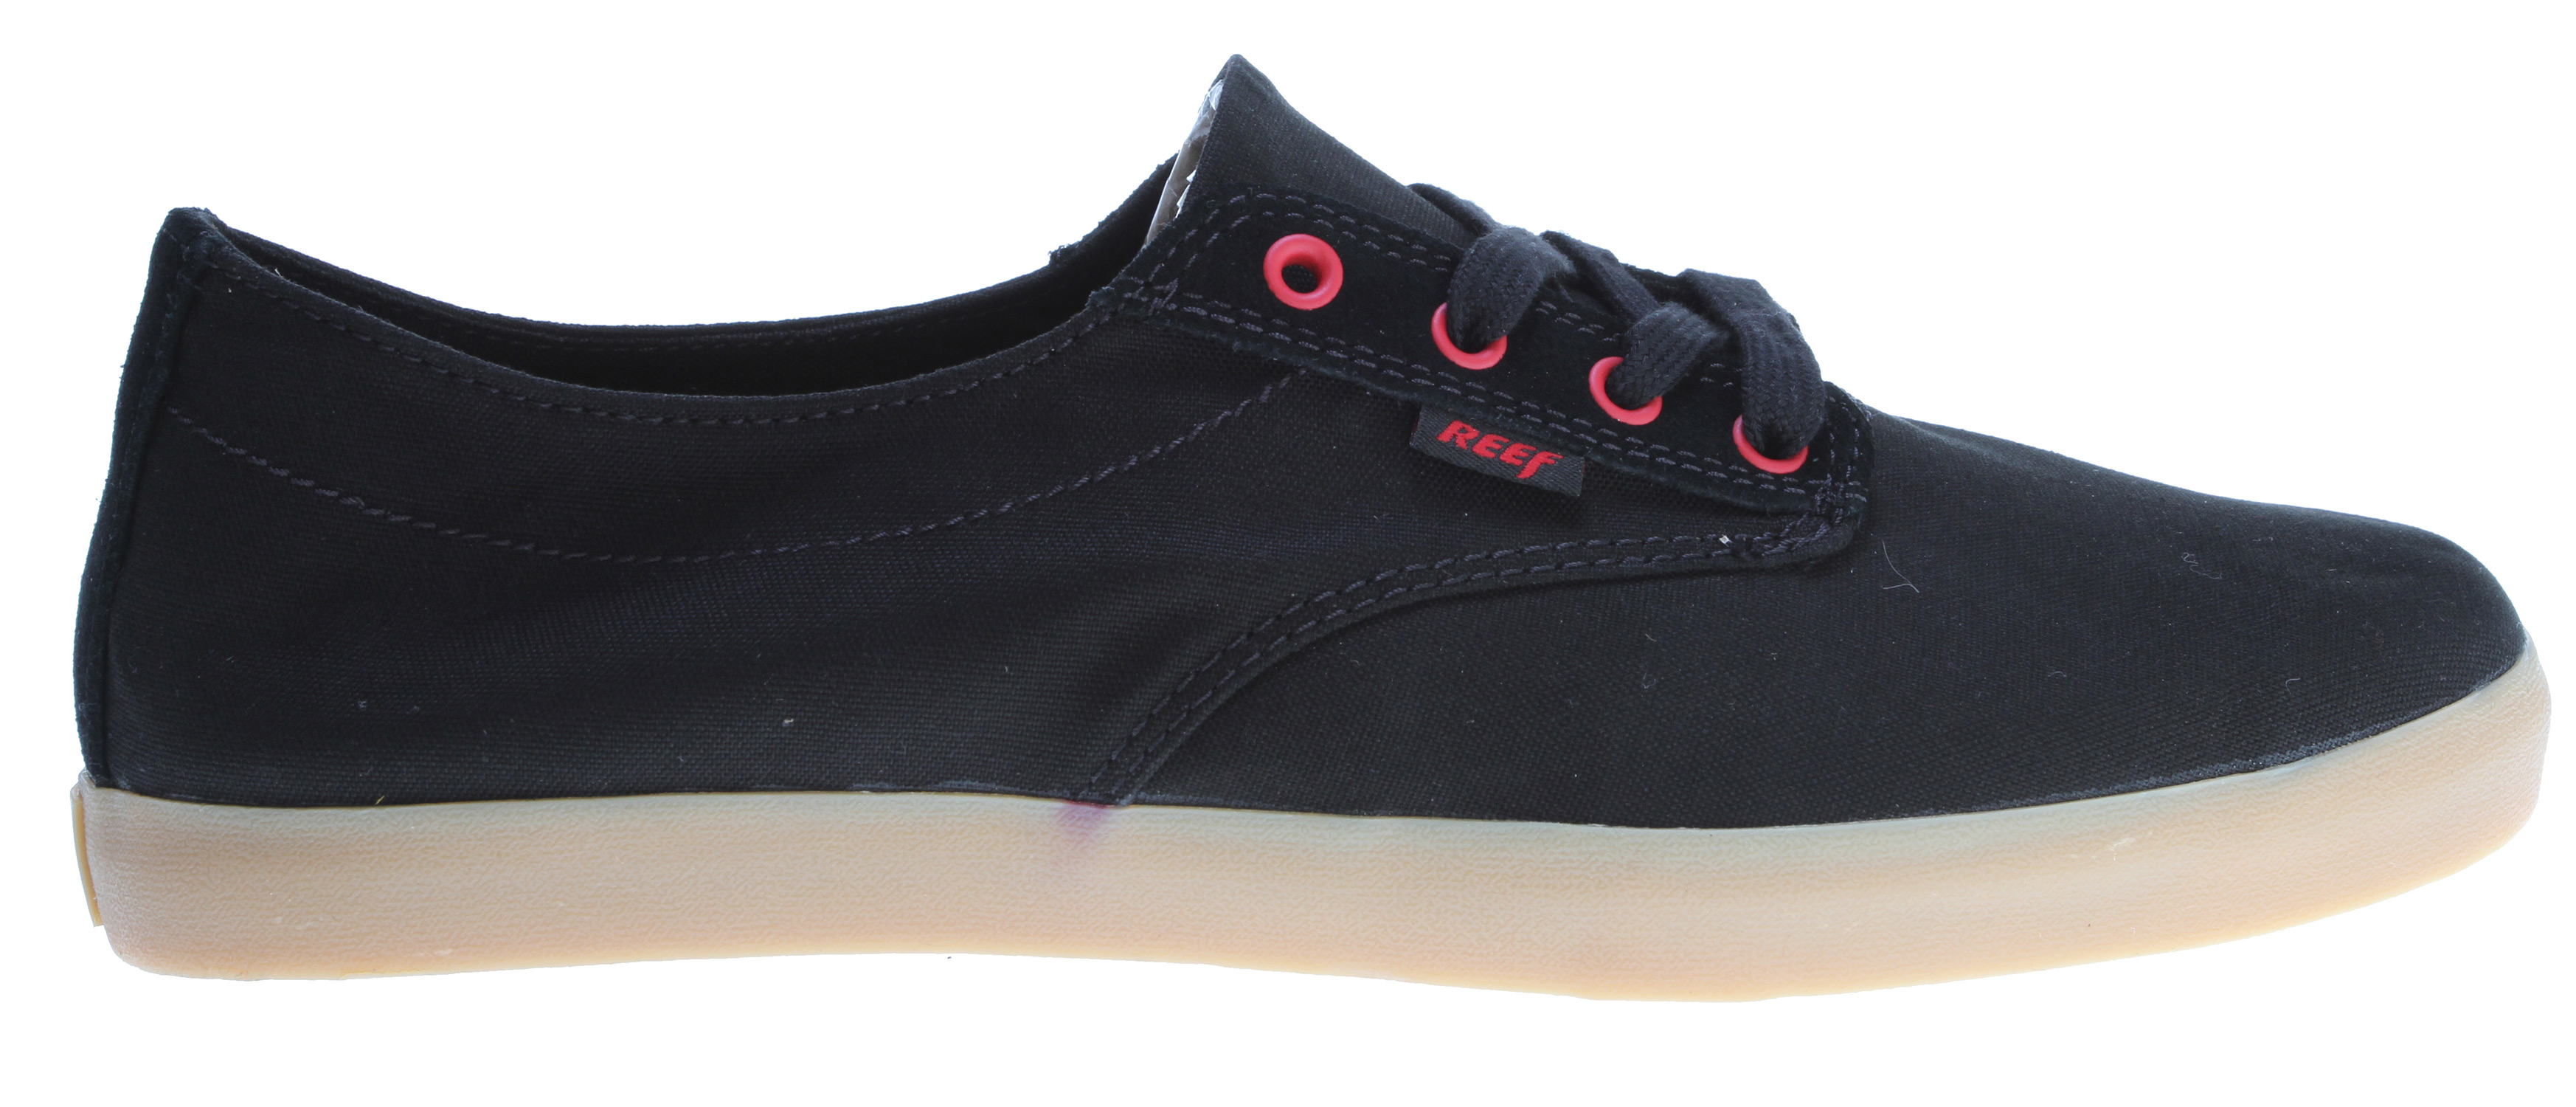 Surf Key Features of the Reef Stanley Casual Shoes: Reef coastal cruisers - hanging footwear Lace up/medium eye row Canvas upper Vulcanized mid sole tape Molded wax texture cushion insole Reef molded rubber swellular traction outsole - $38.95